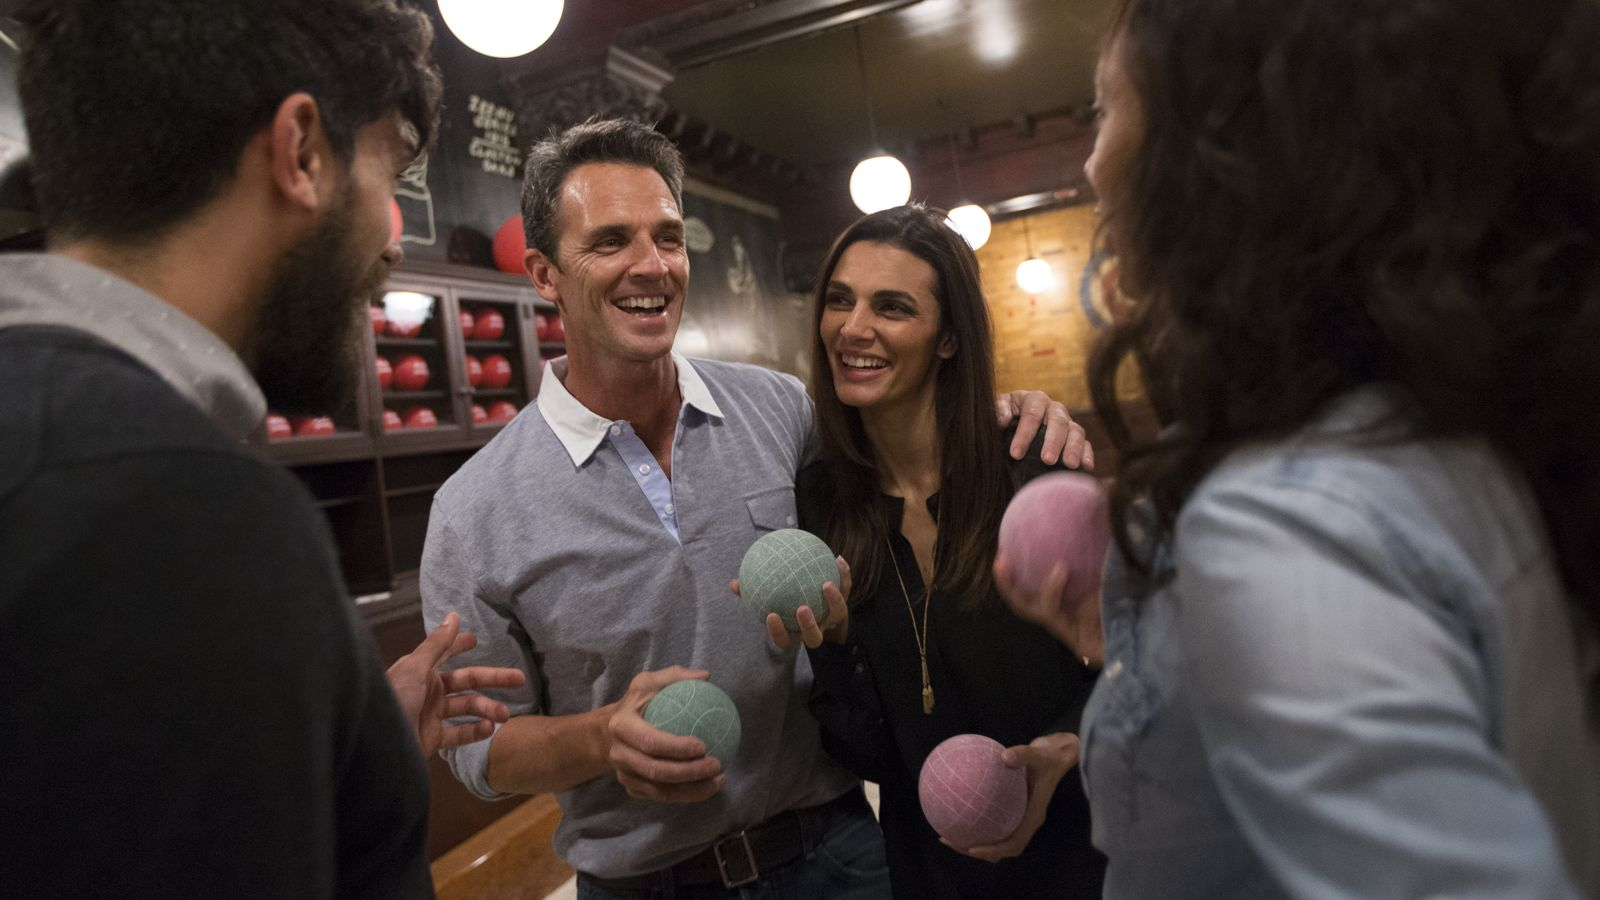 Chicago Athletic Association_Lifestyle_Game Room_Bocce Ball_Thomas Shelby